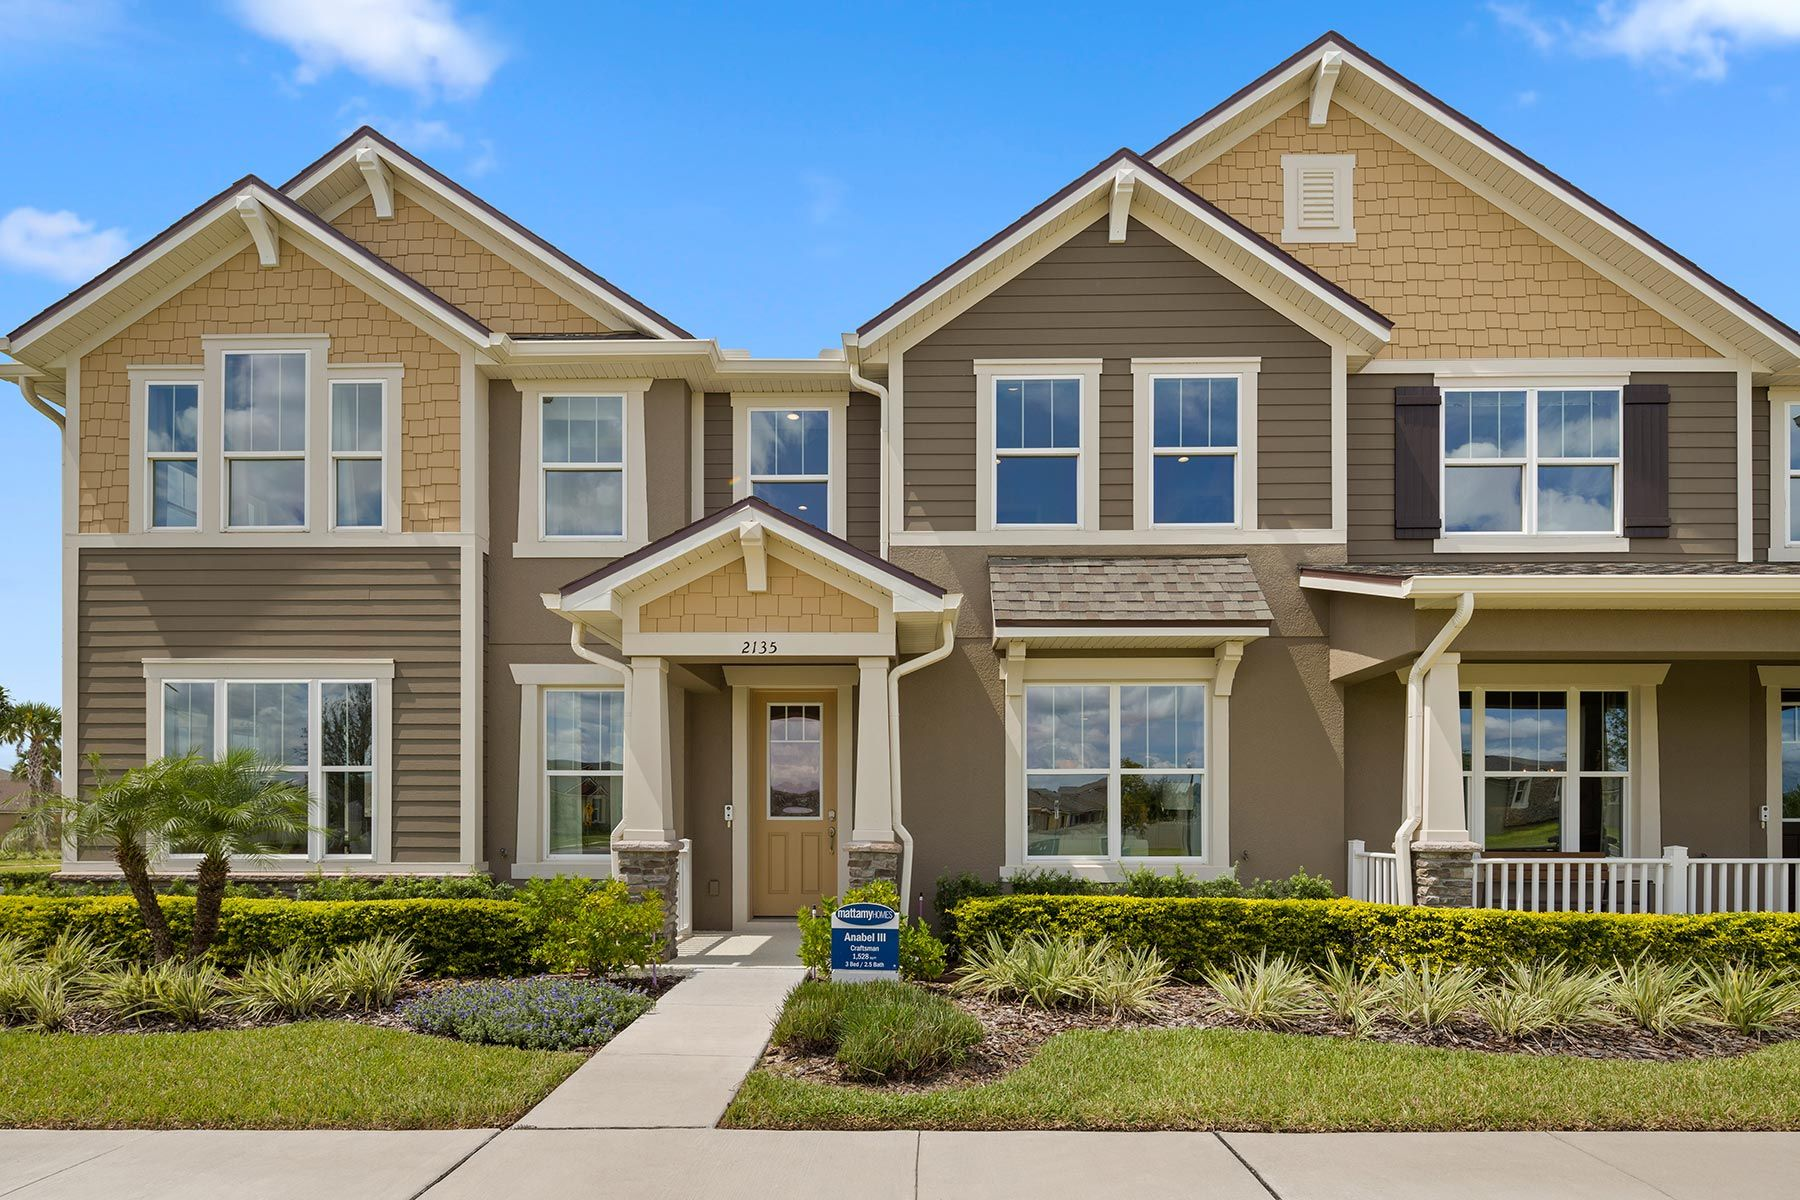 Exterior:PHOTO REPRESENTATION OF THE ANABEL III MODEL HOME